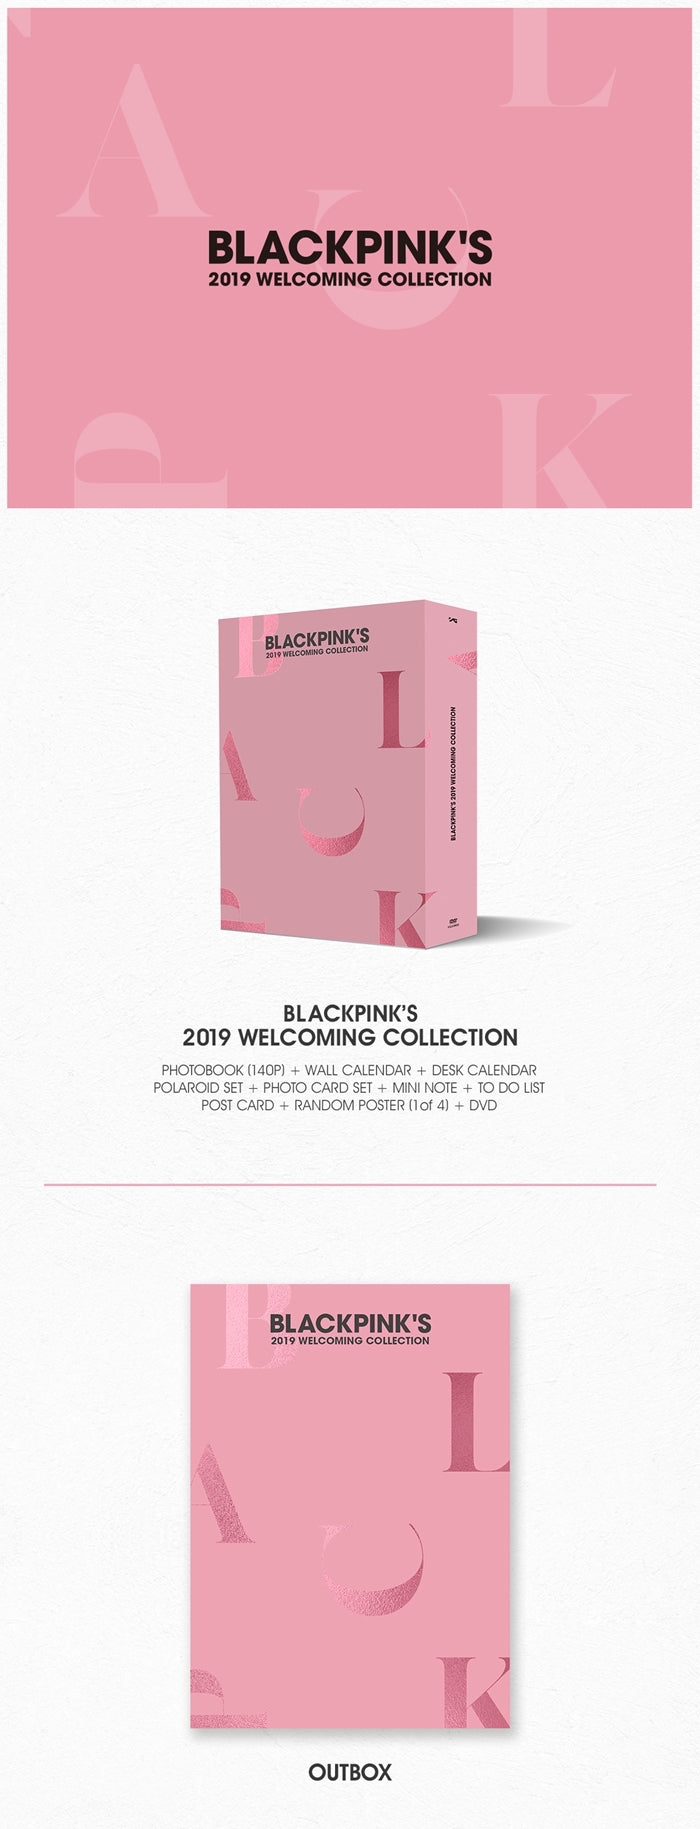 Blackpink - Blackpink's 2019 Welcoming Collection - Jetzt lieferbar